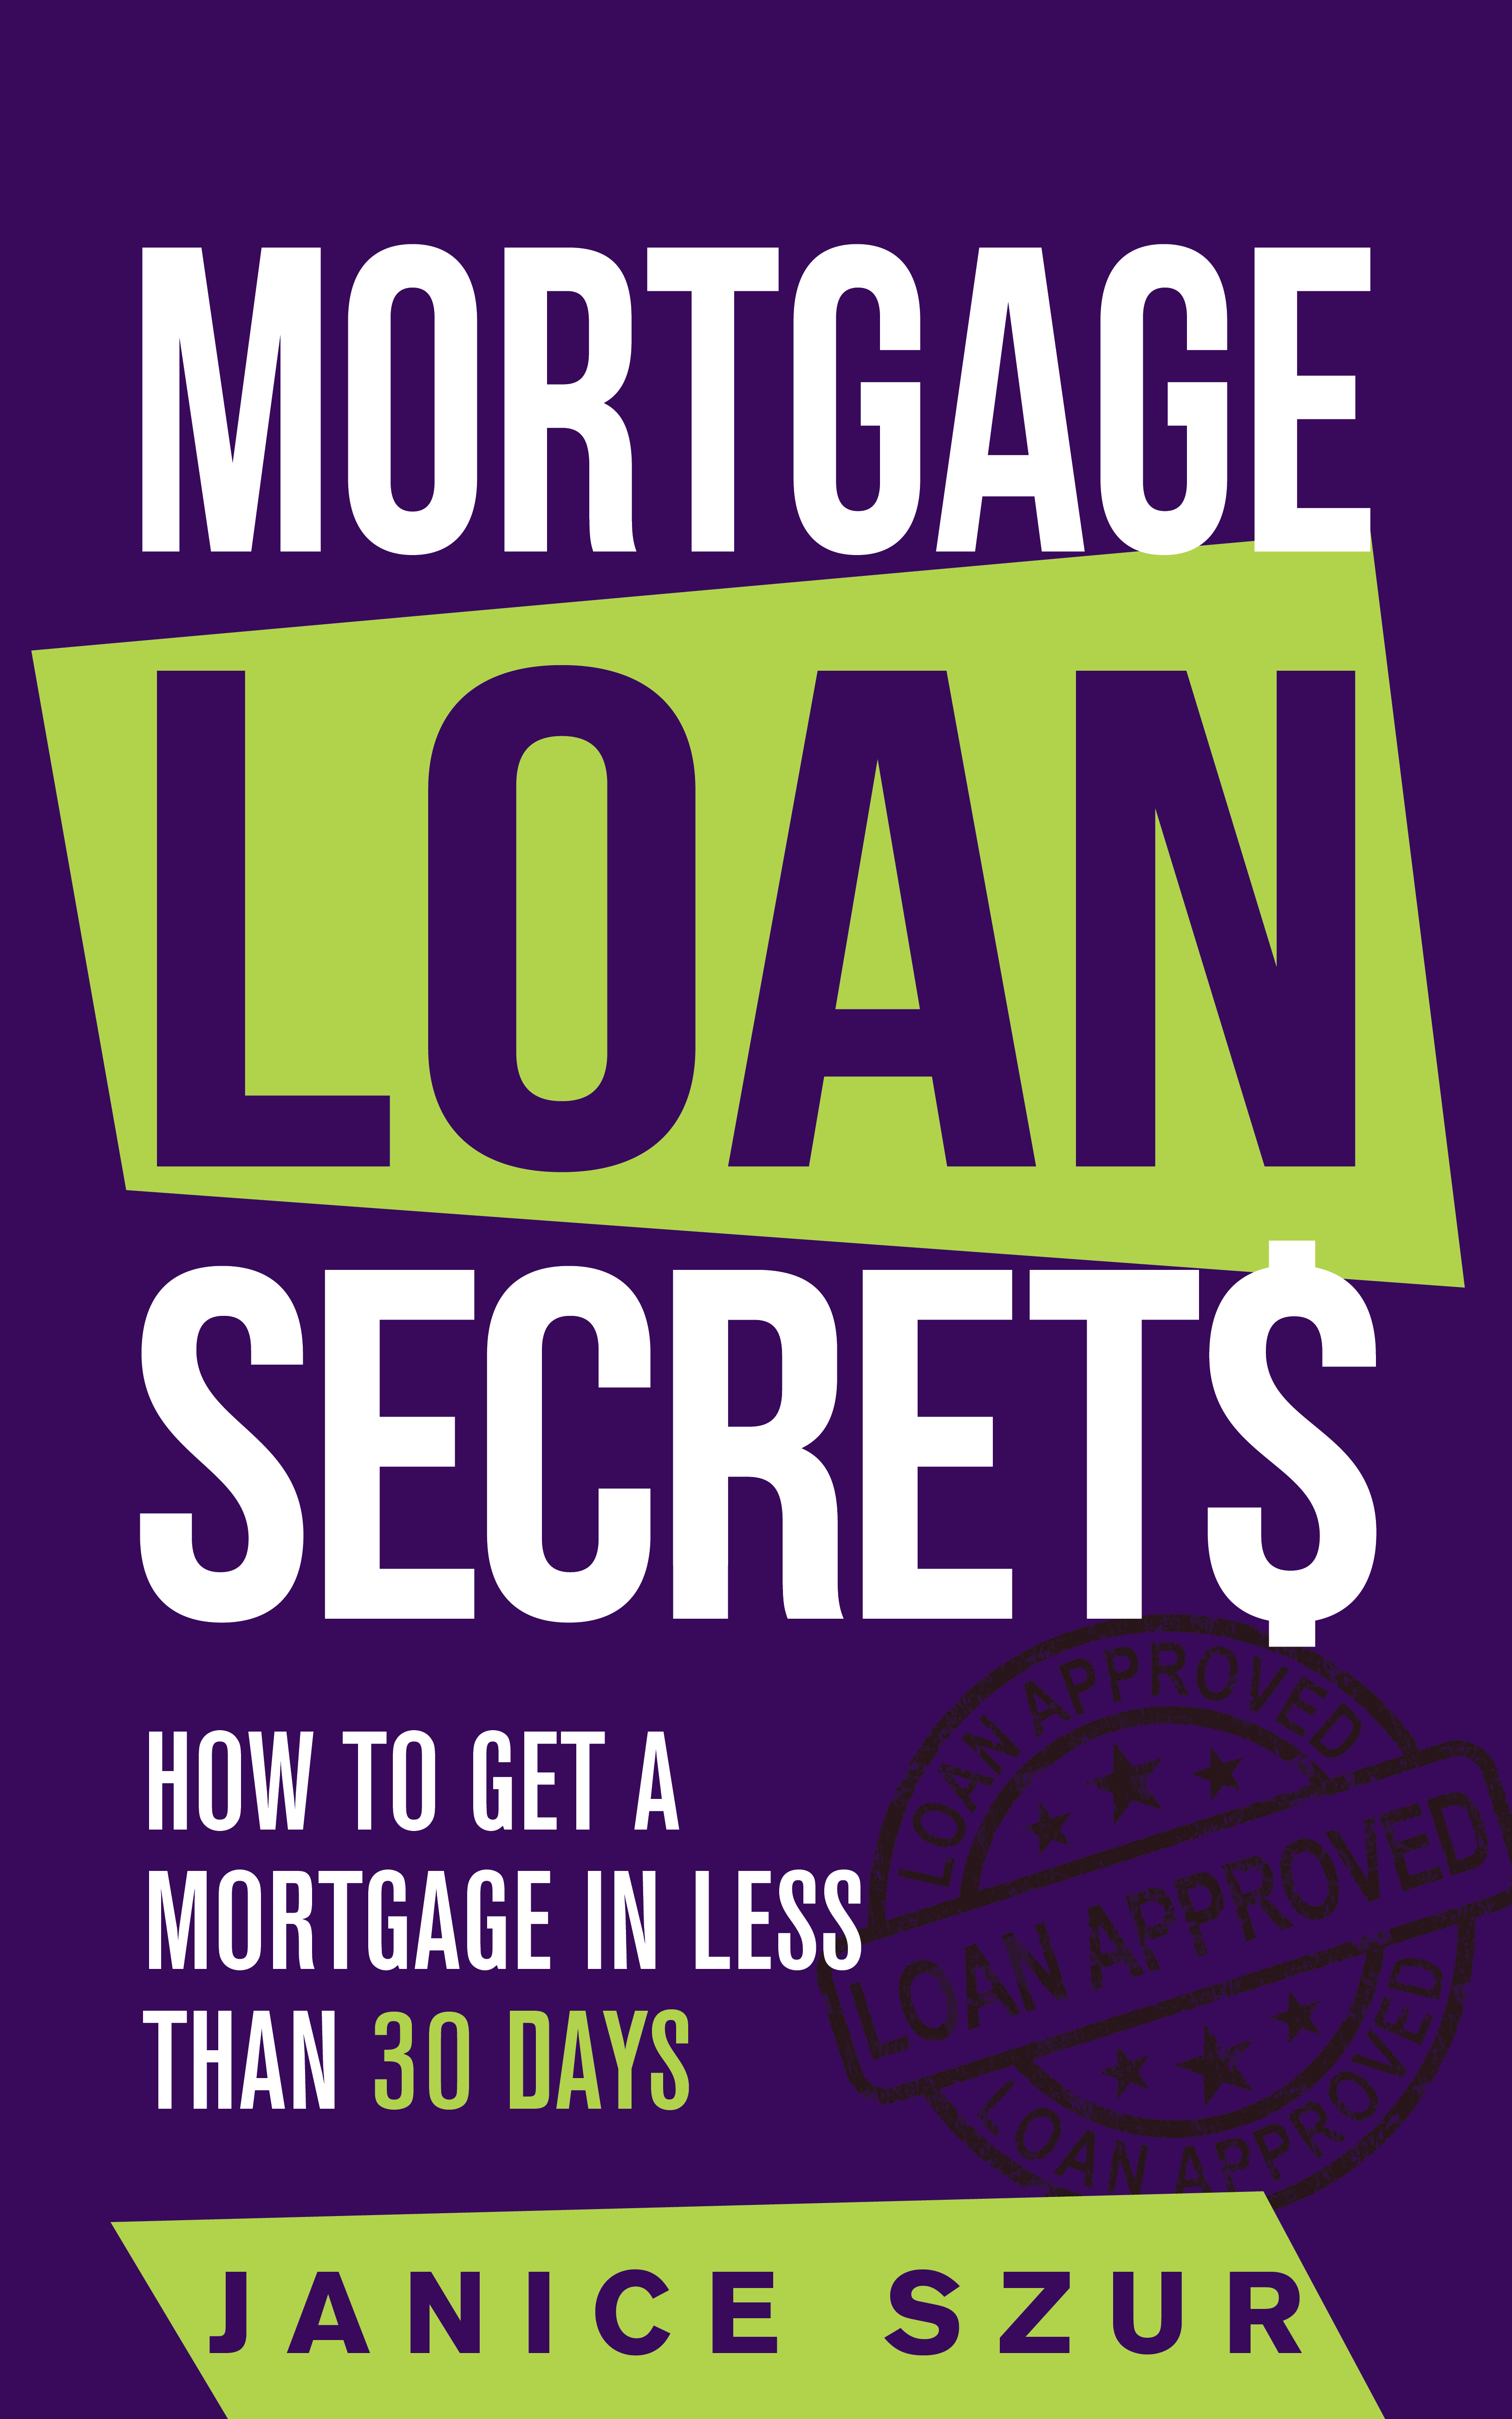 Exciting ebook cover for a mundane subject like mortgages